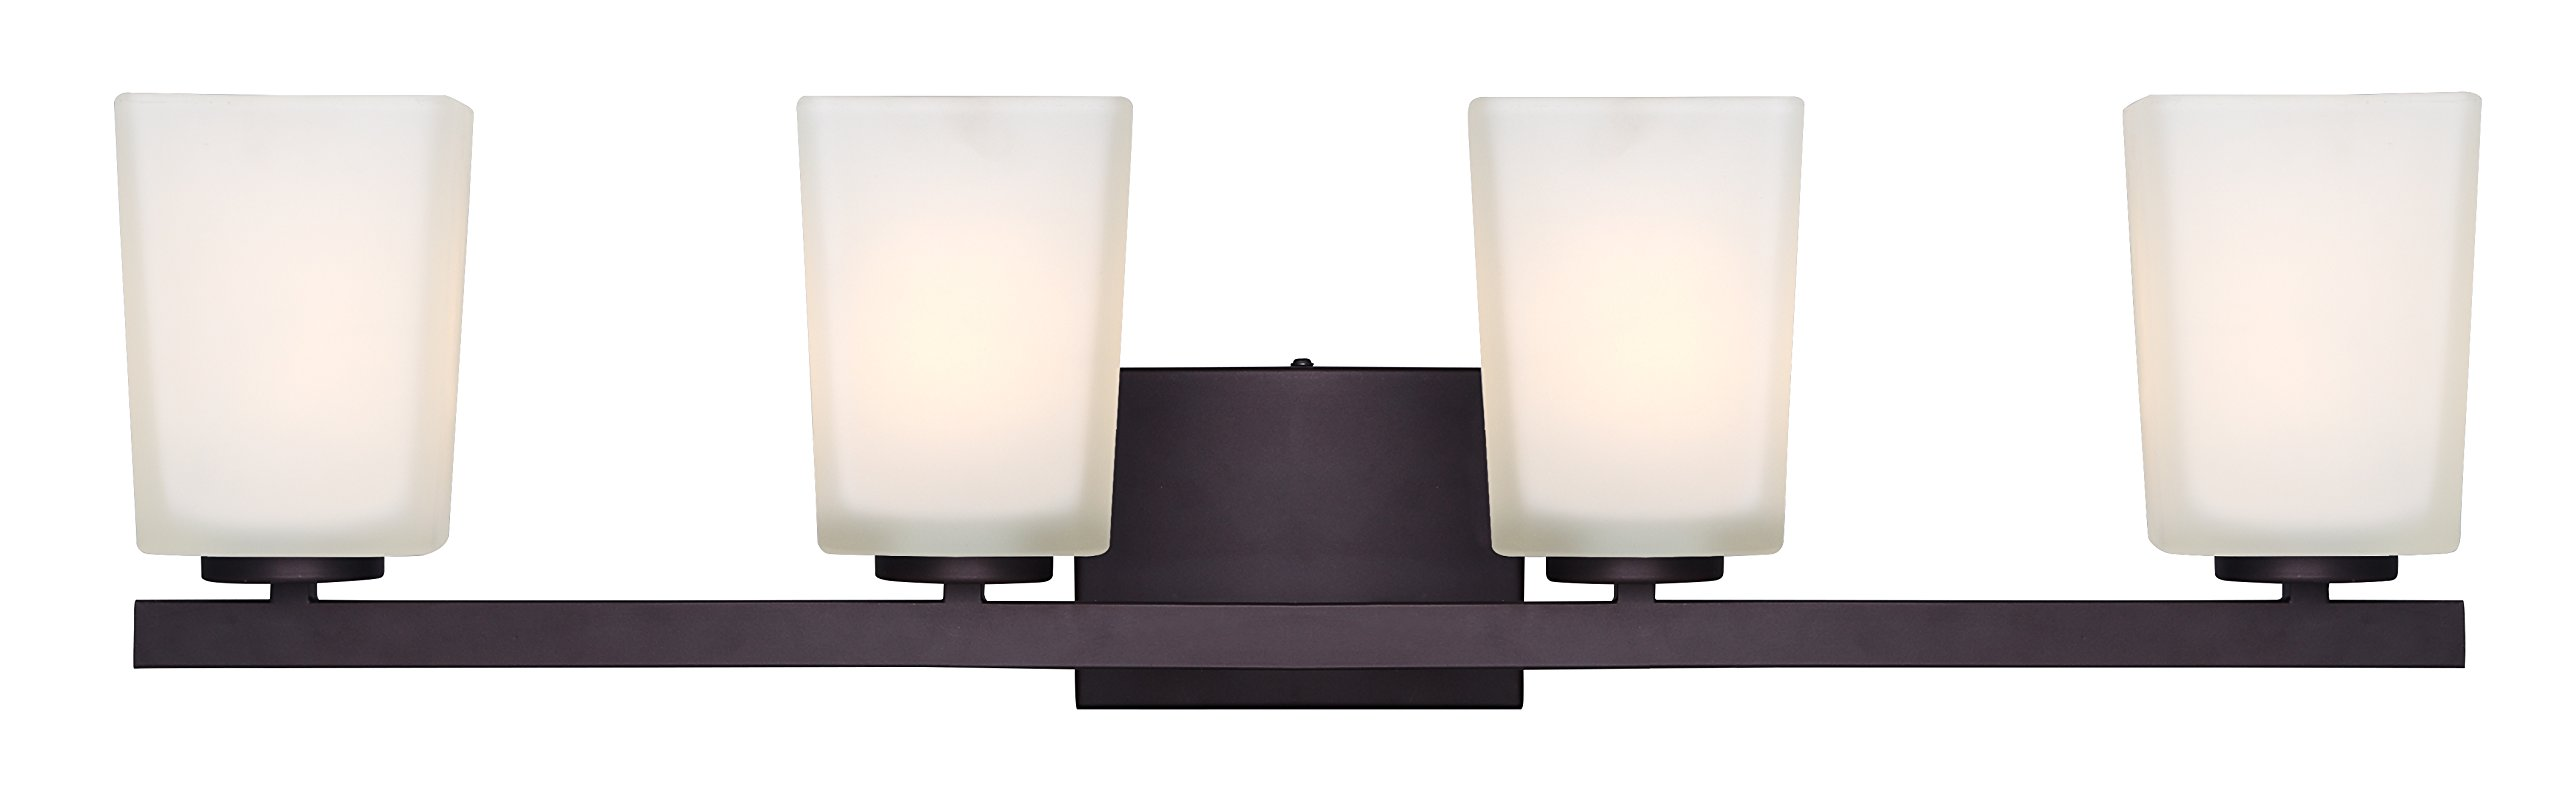 Canarm IVL472A04ORB Ltd Hartley 4 Light Vanity, Oil Rubbed Bronze with Flat Opal Glass